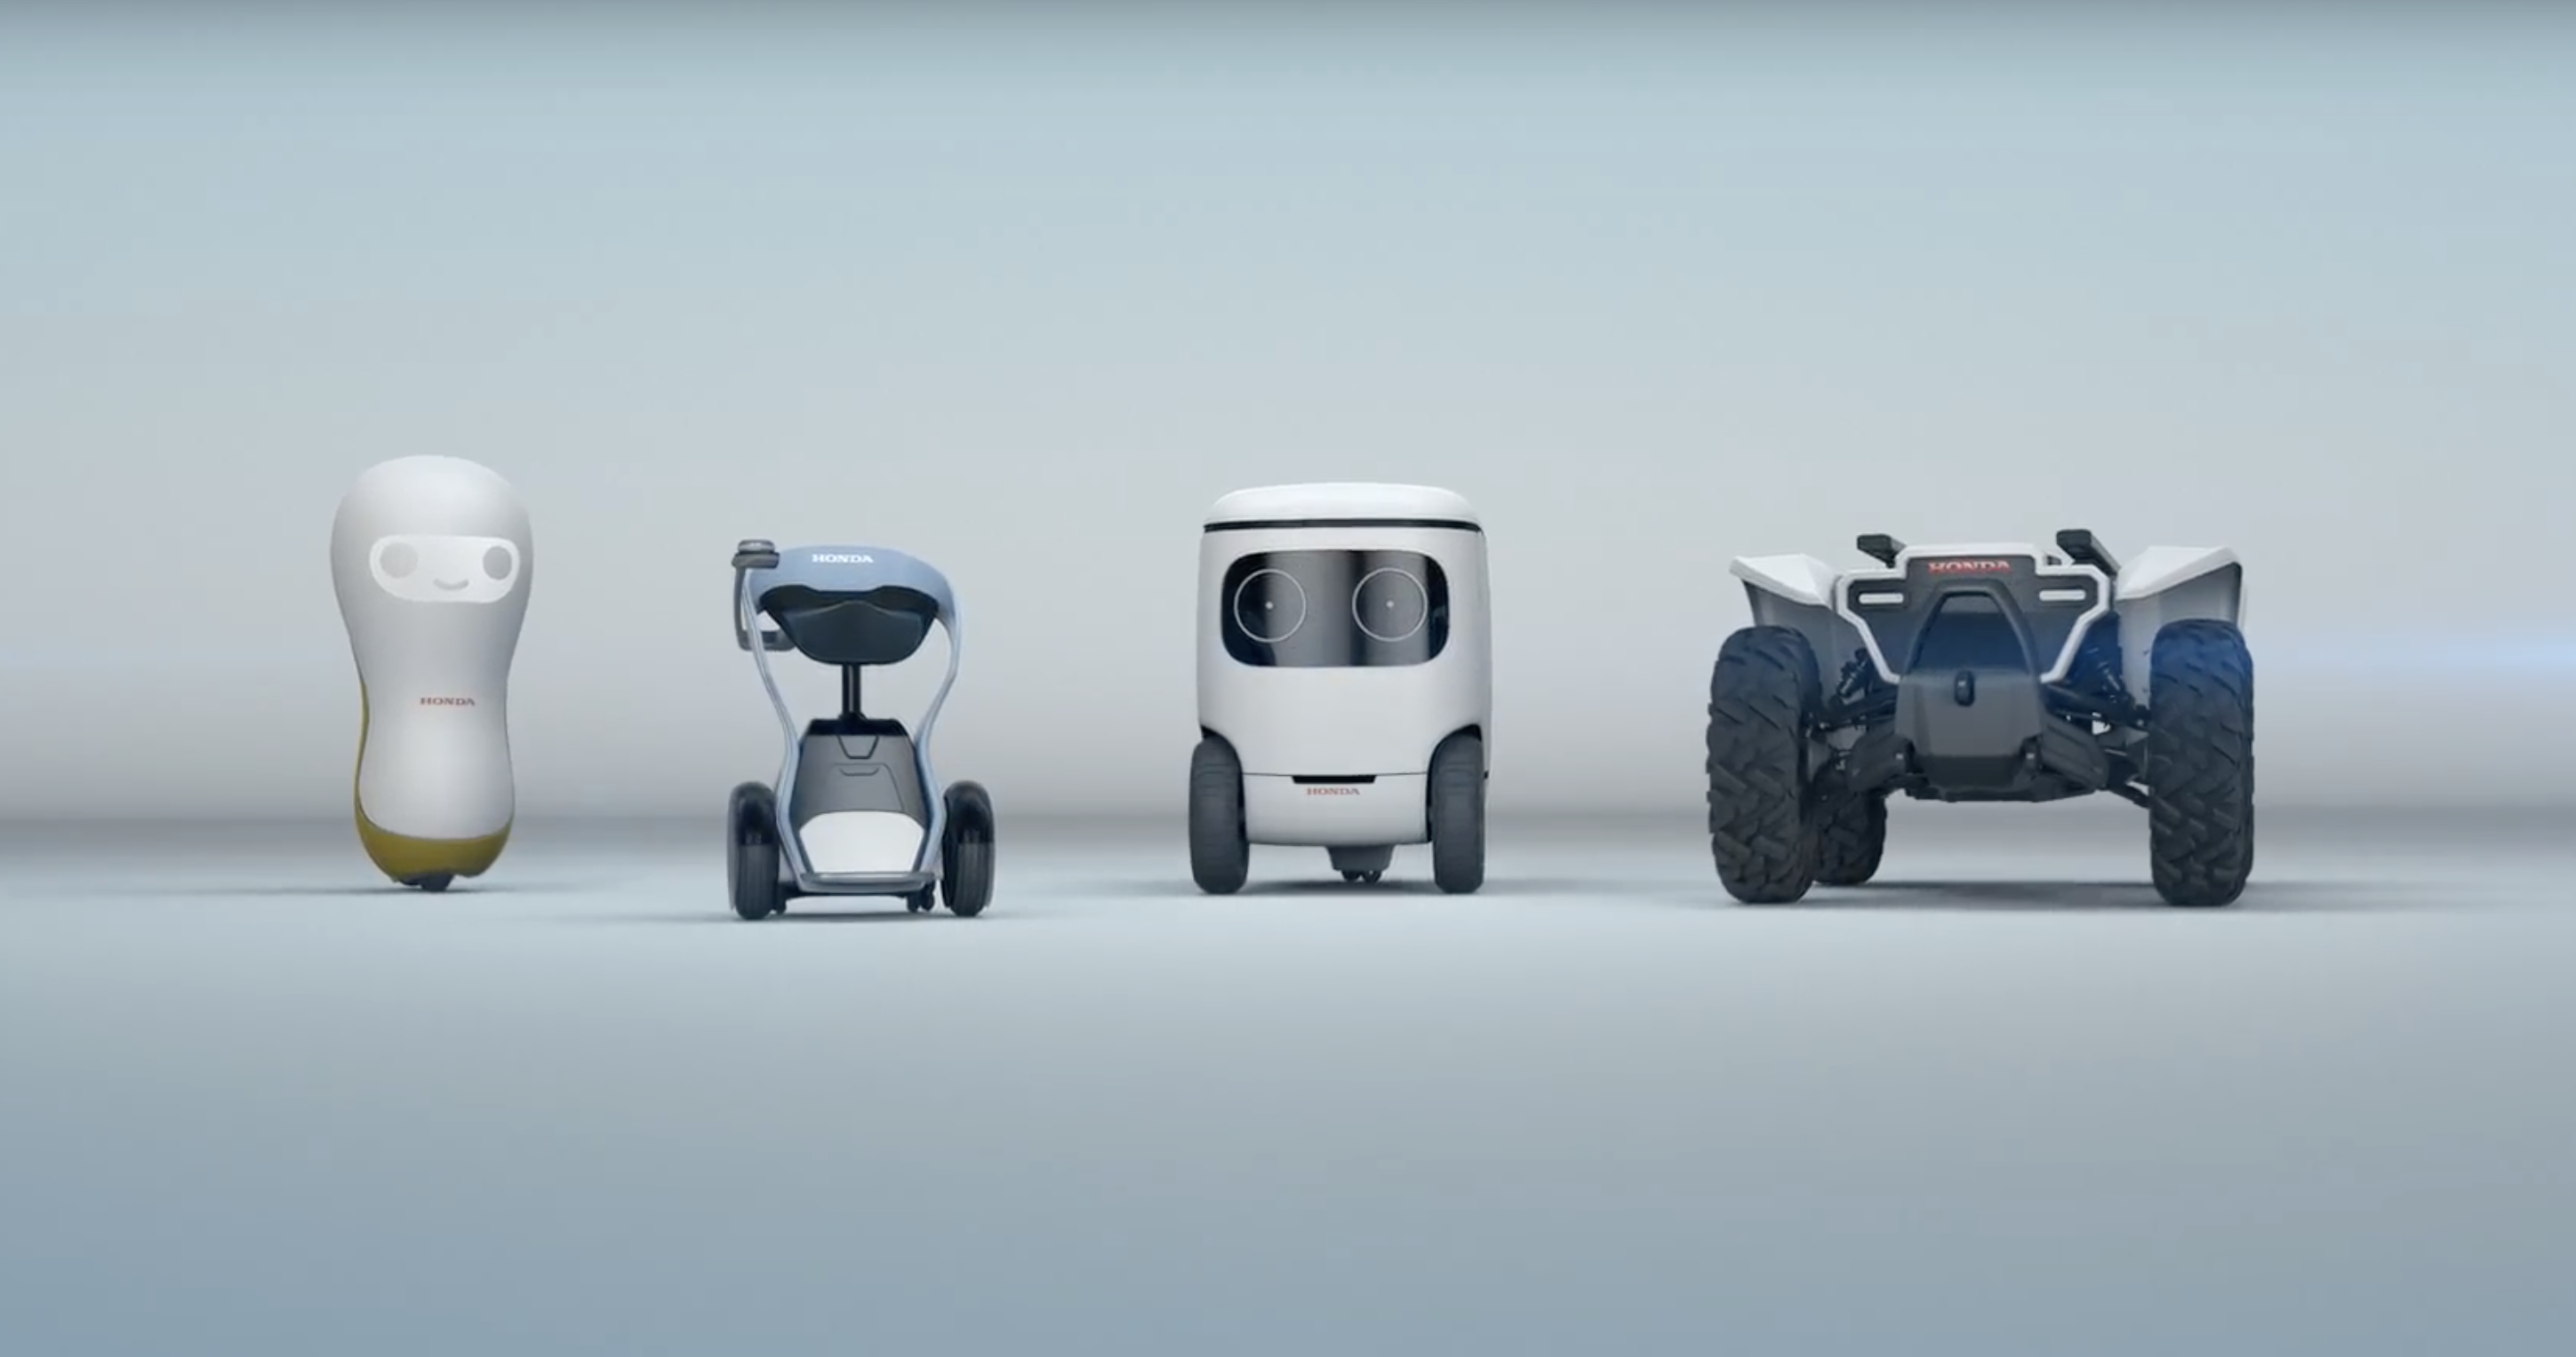 These new Honda concept mobility robots are adorable | DeviceDaily.com